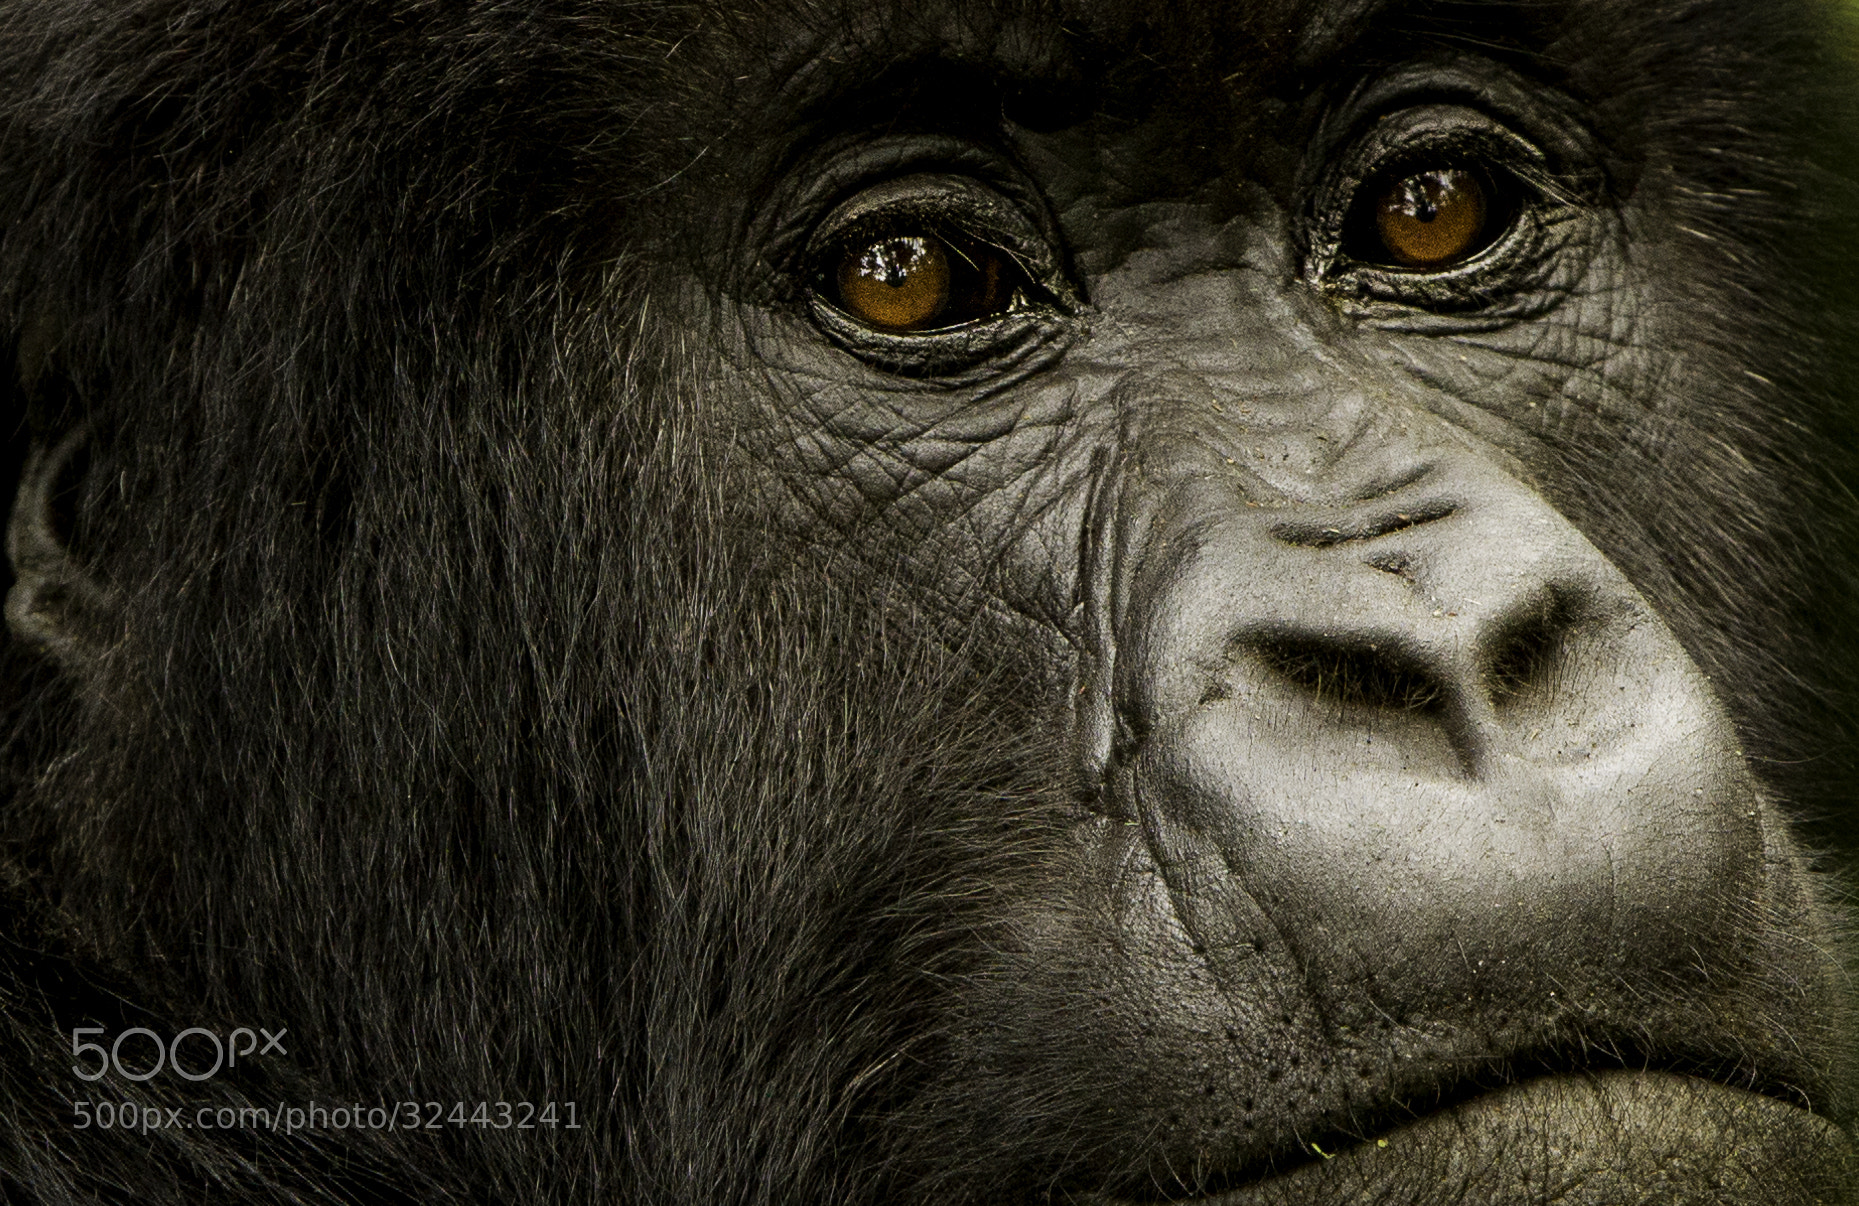 Photograph The Look by Batu Berkok on 500px